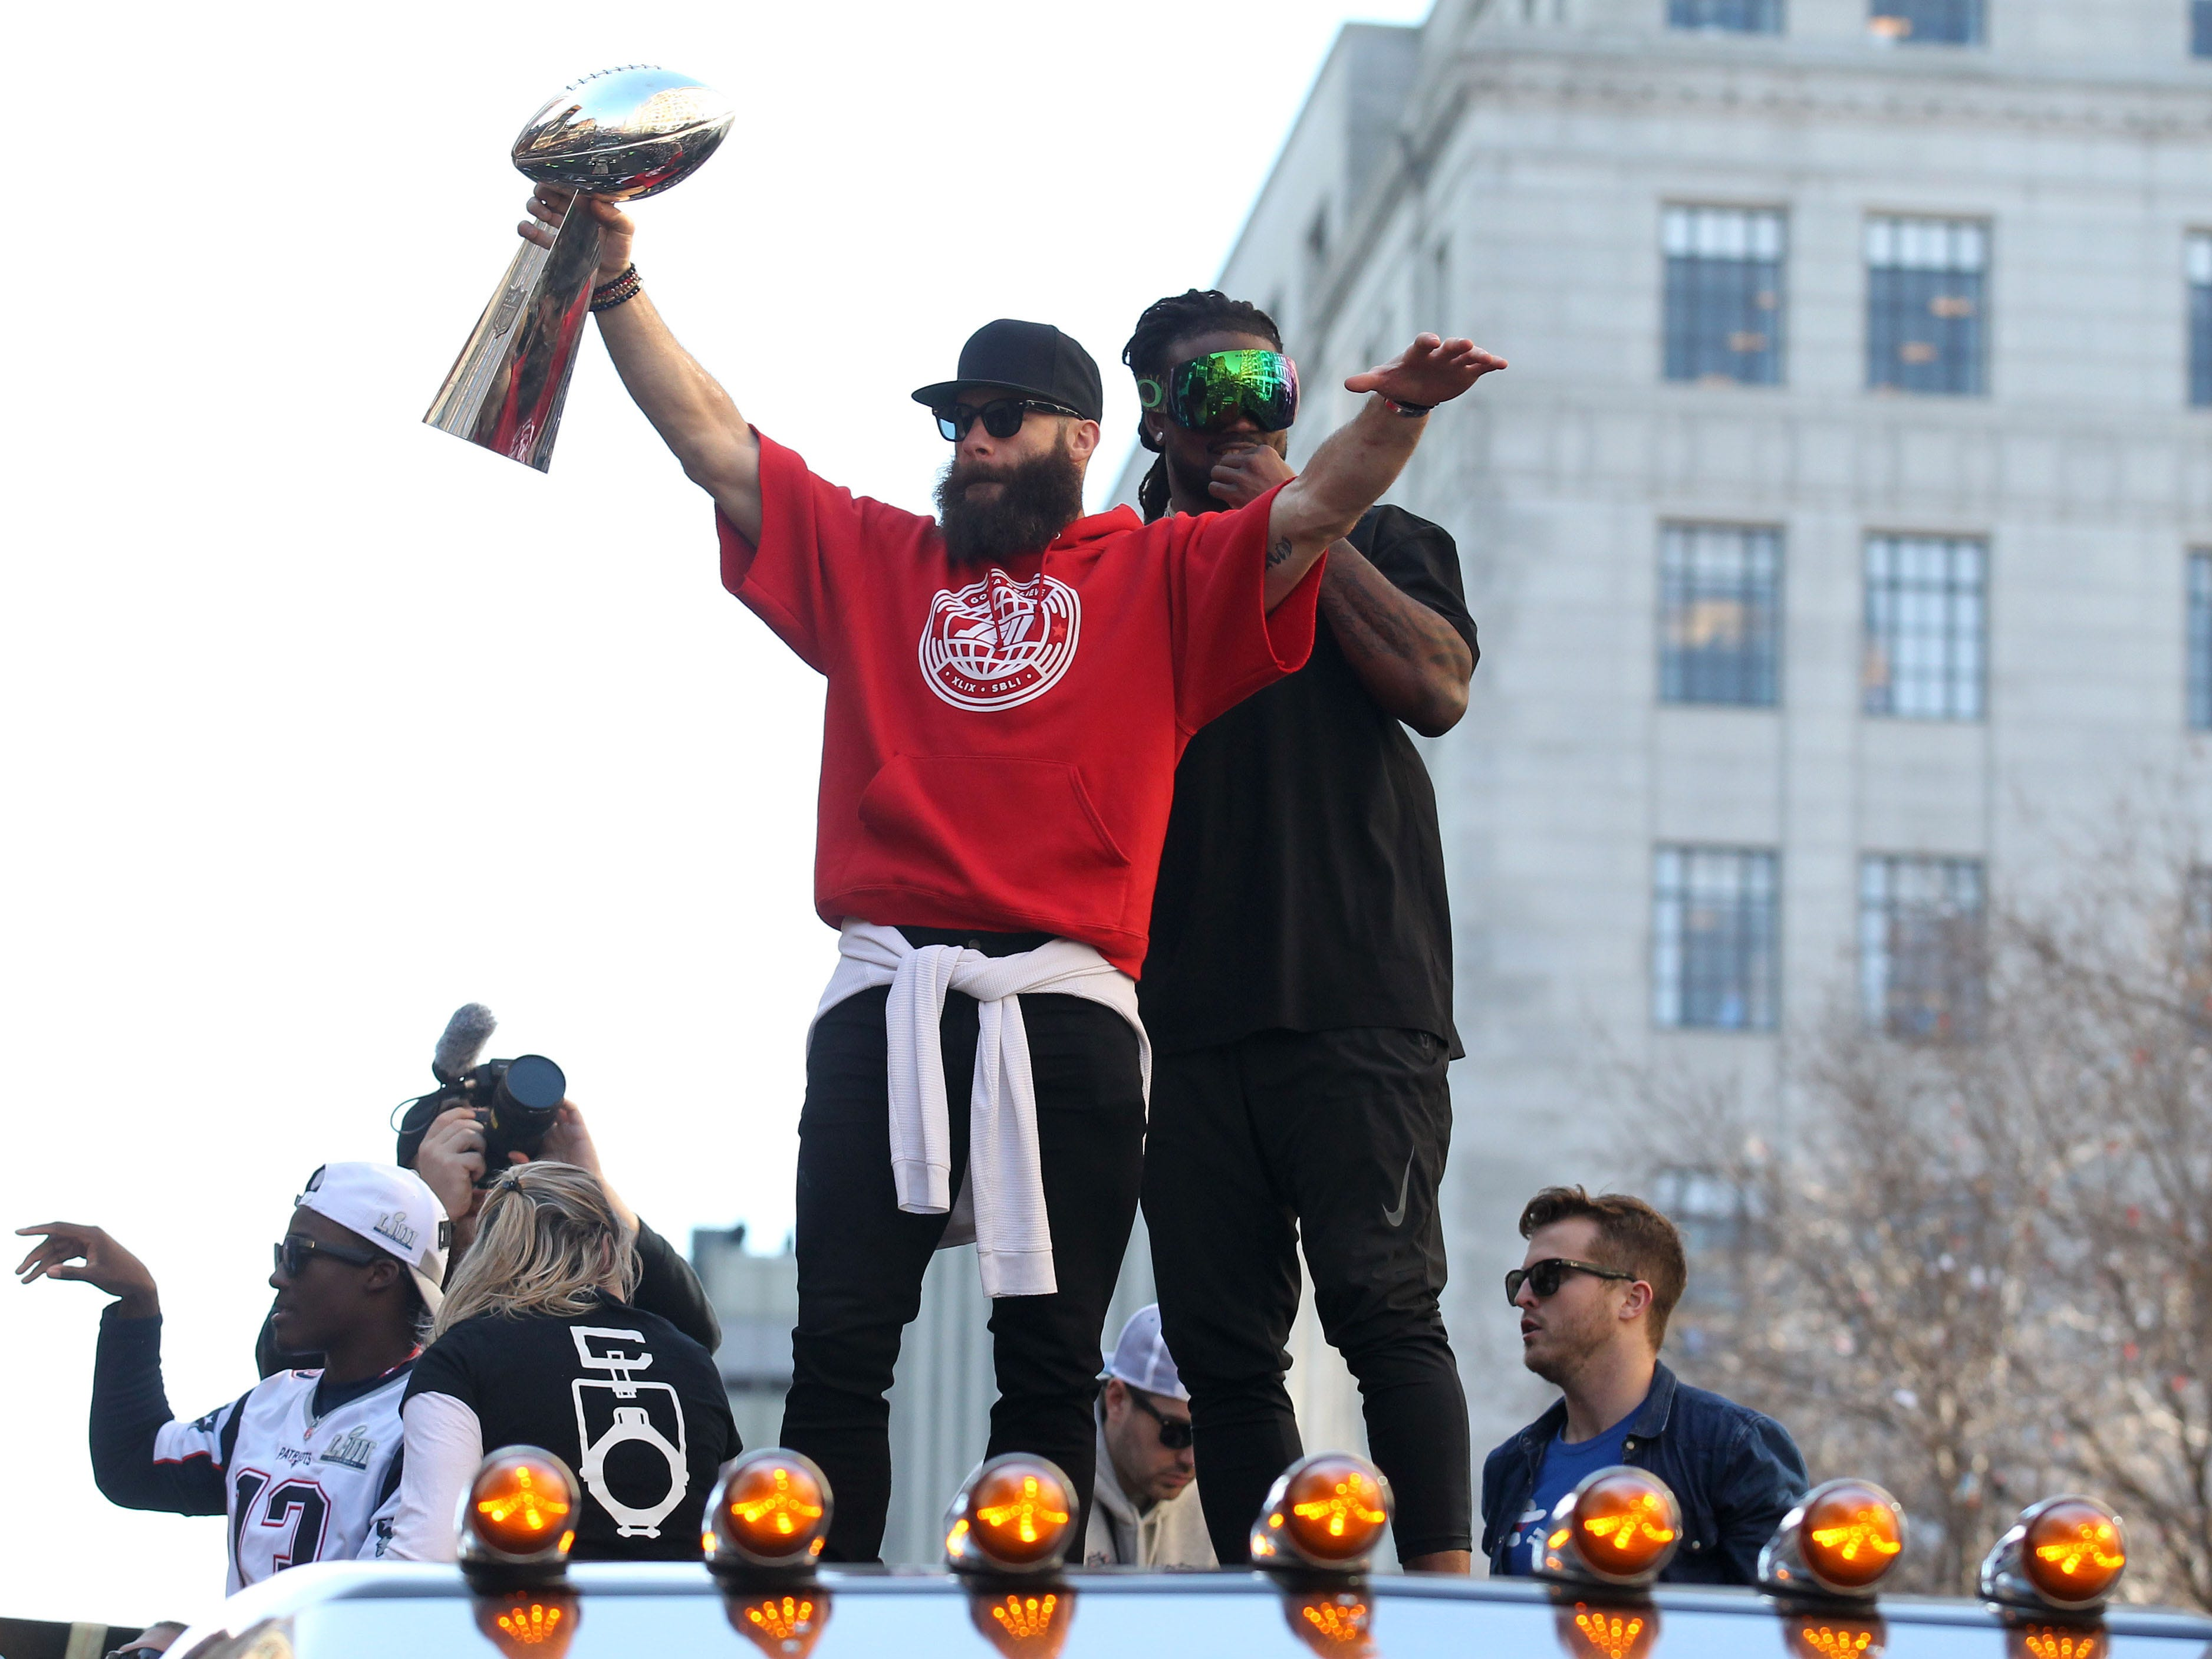 New England Patriots wide receiver Julian Edelman hoists the Lombardi Trophy as he rides a truck during the Super Bowl LIII championship parade.